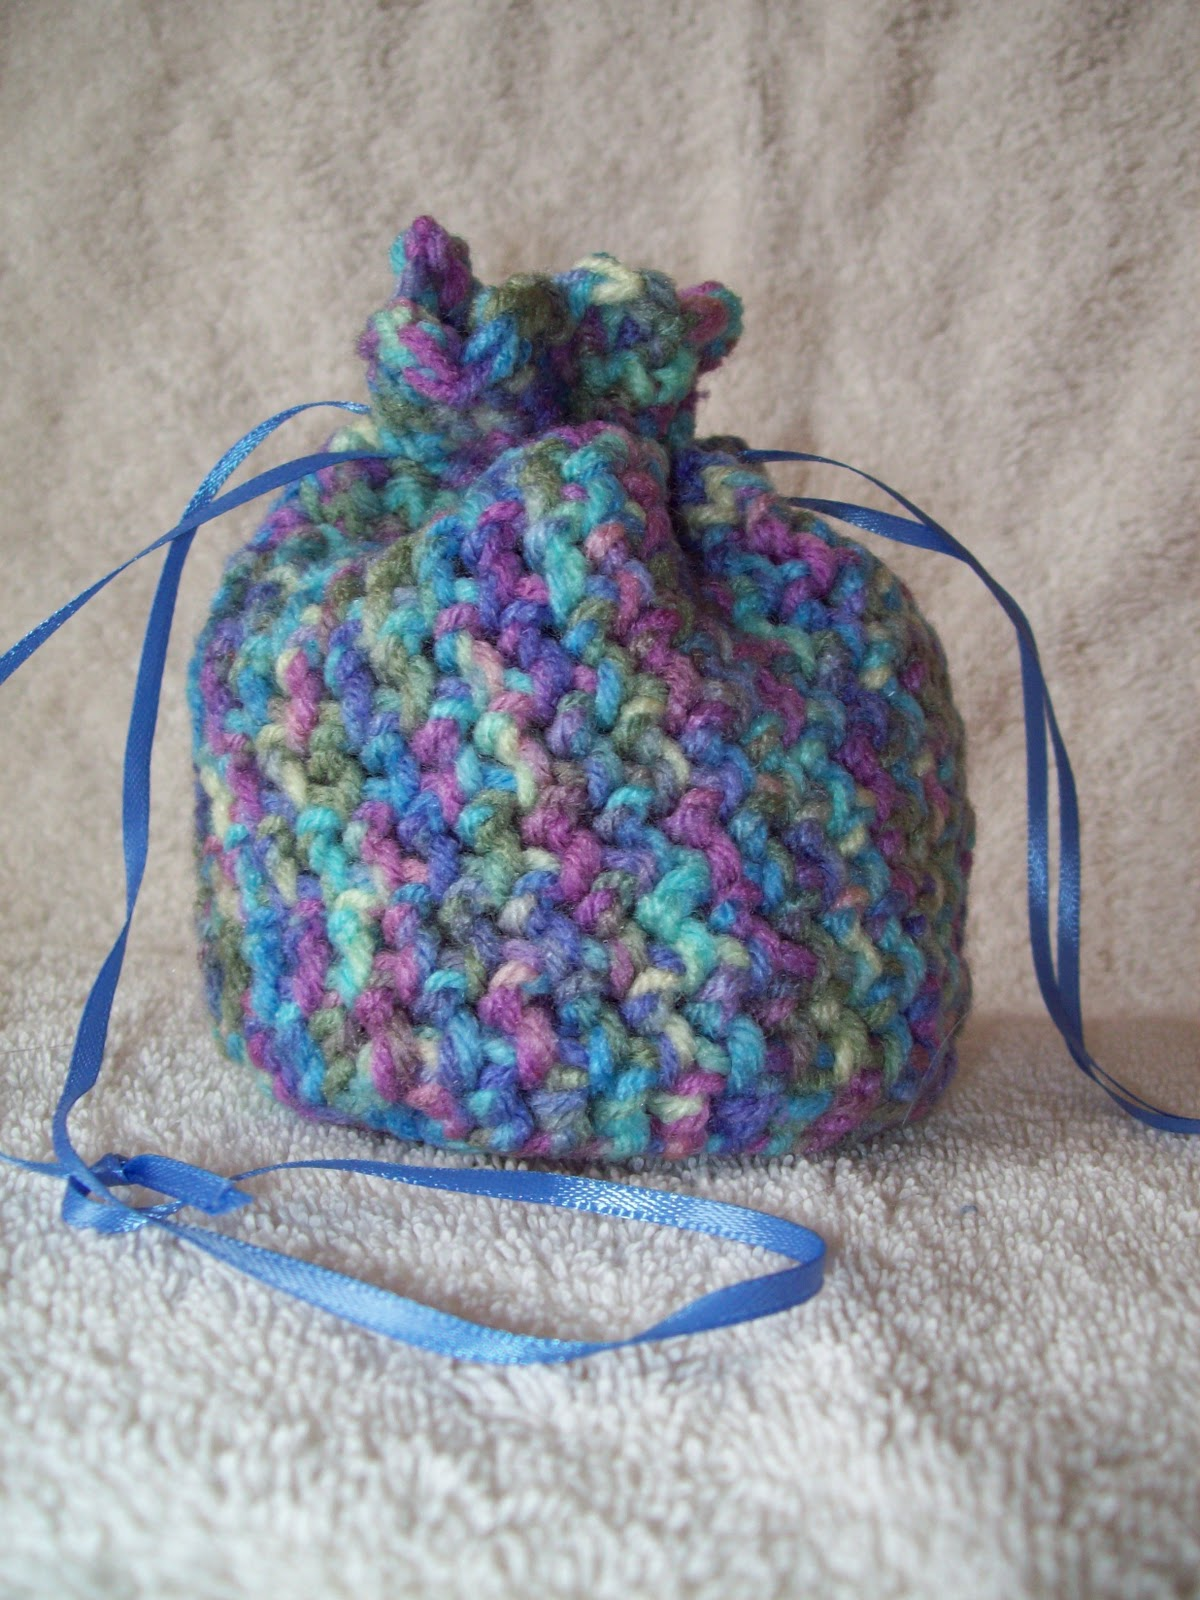 Monet+Crochet+Mini+Drawstring+Bag+with+a+Ribbon+Drawstring.jpg